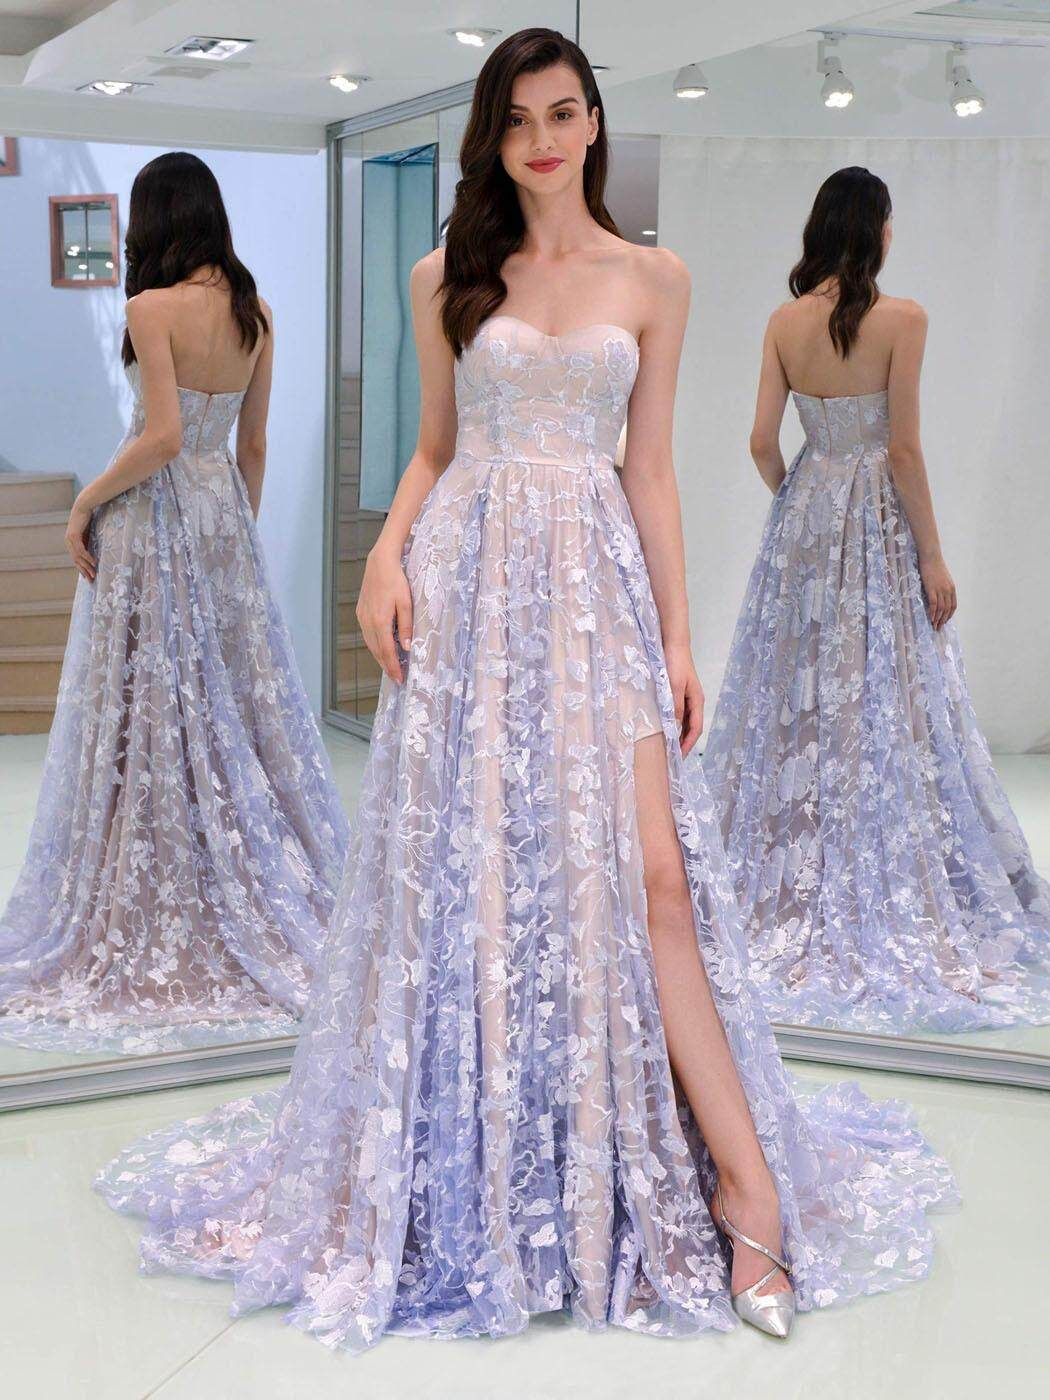 c5a67d575b AngelCityMall Philippines - AngelCityMall Dresses for Women for sale ...